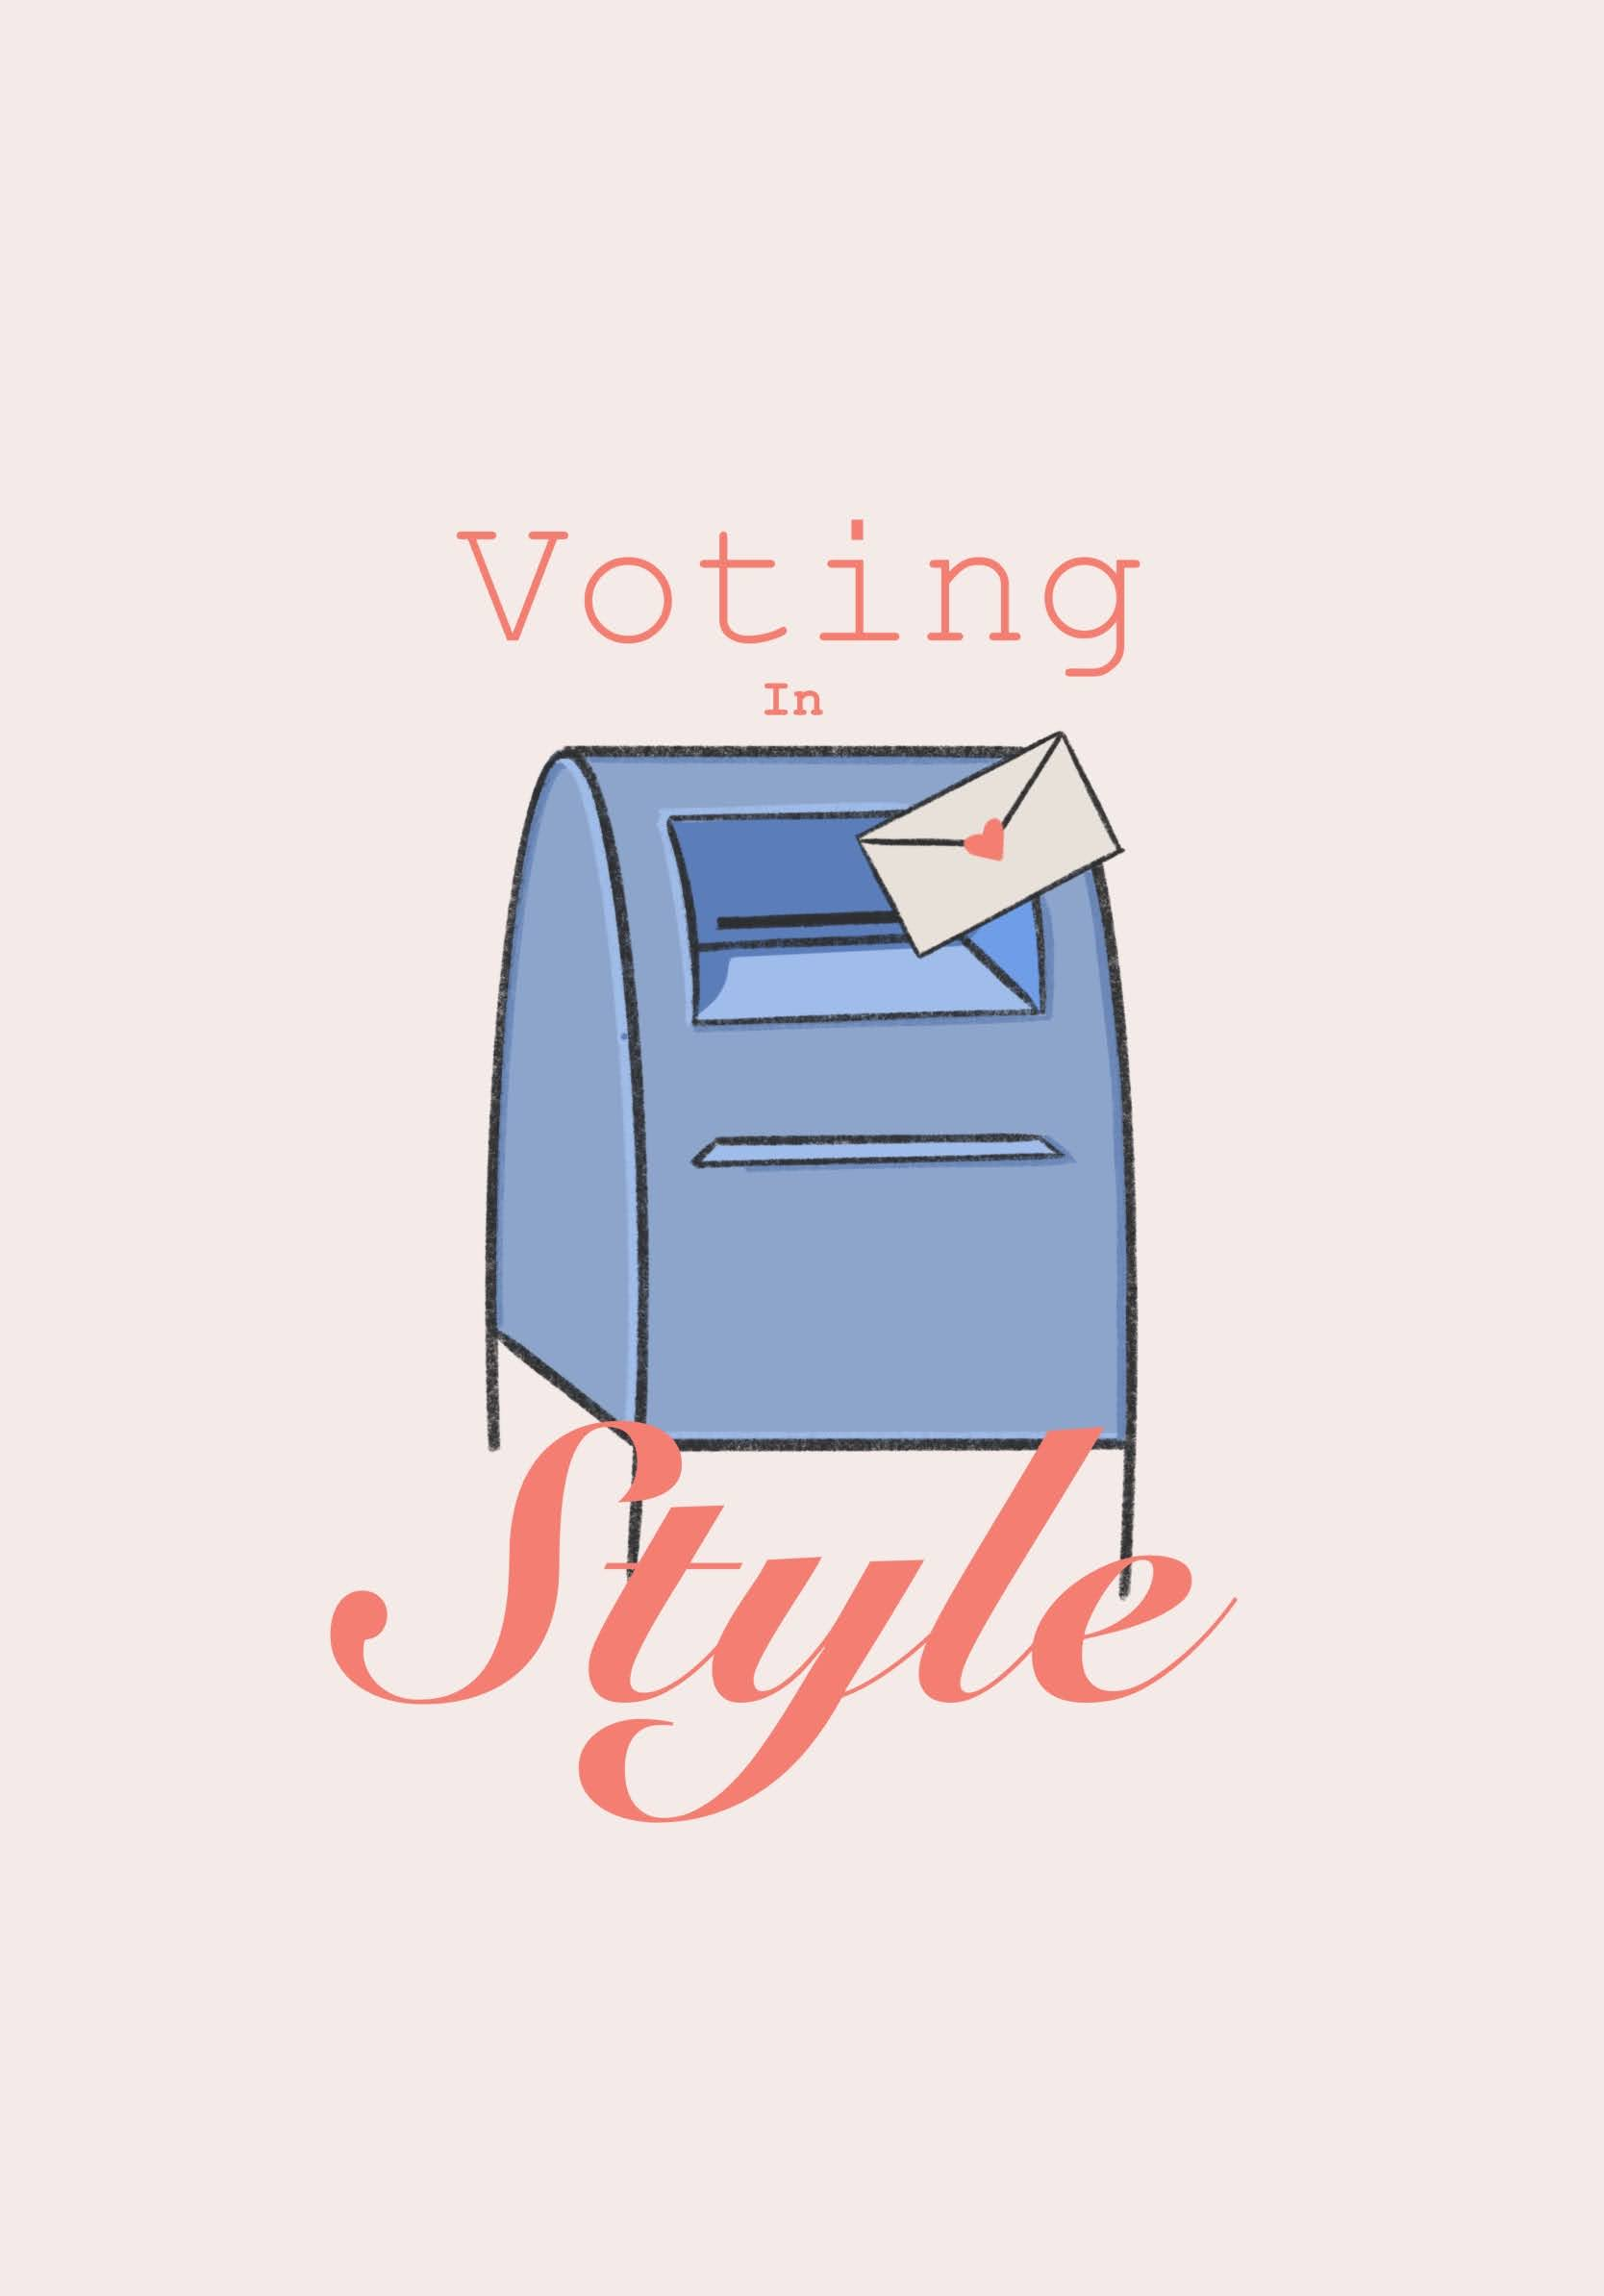 Voting in style logo